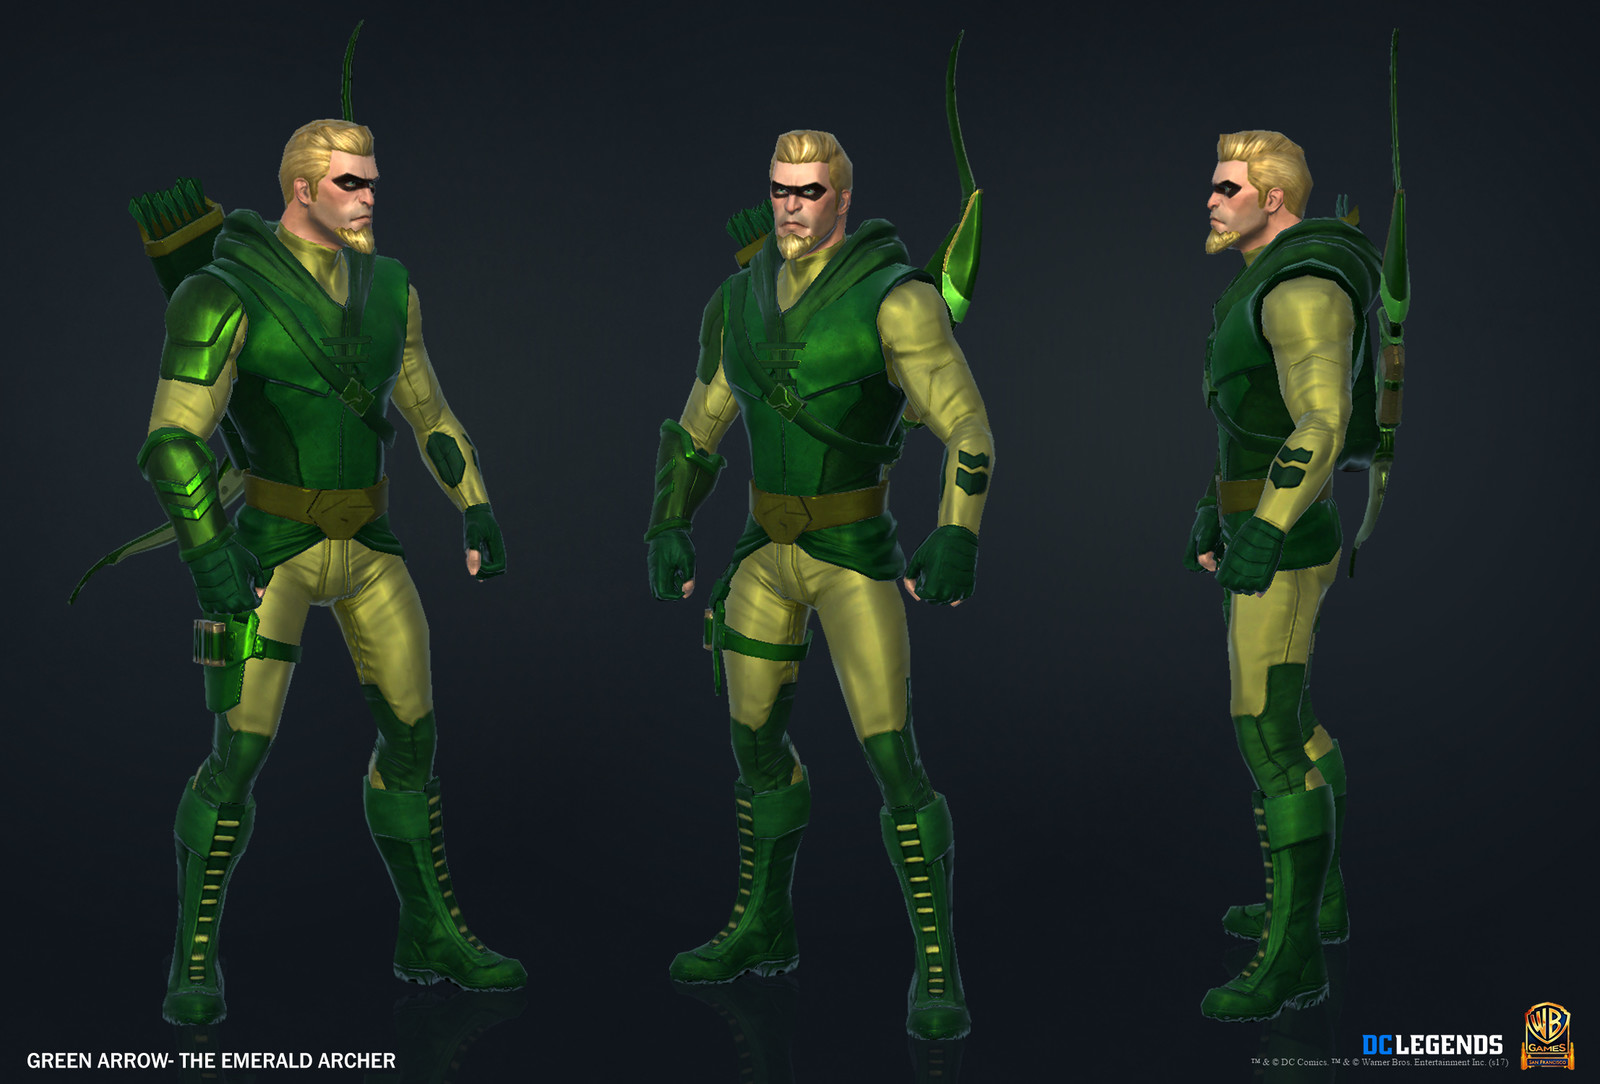 Green Arrow Heroic. High Poly, Low Poly and Textures/Material work done by me. Additional Texture/Material pass done by Josiah Martinez.